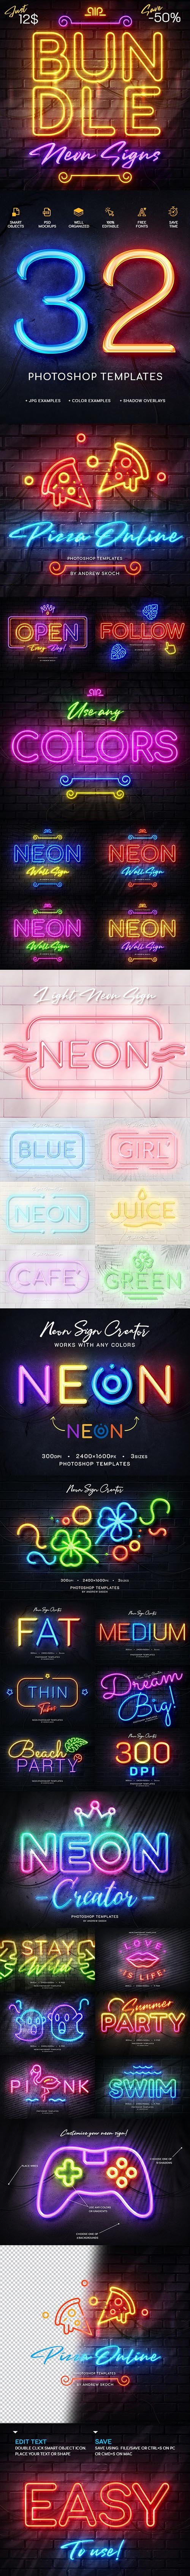 GraphicRiver - Wall Neon Signs Bundle 28112439